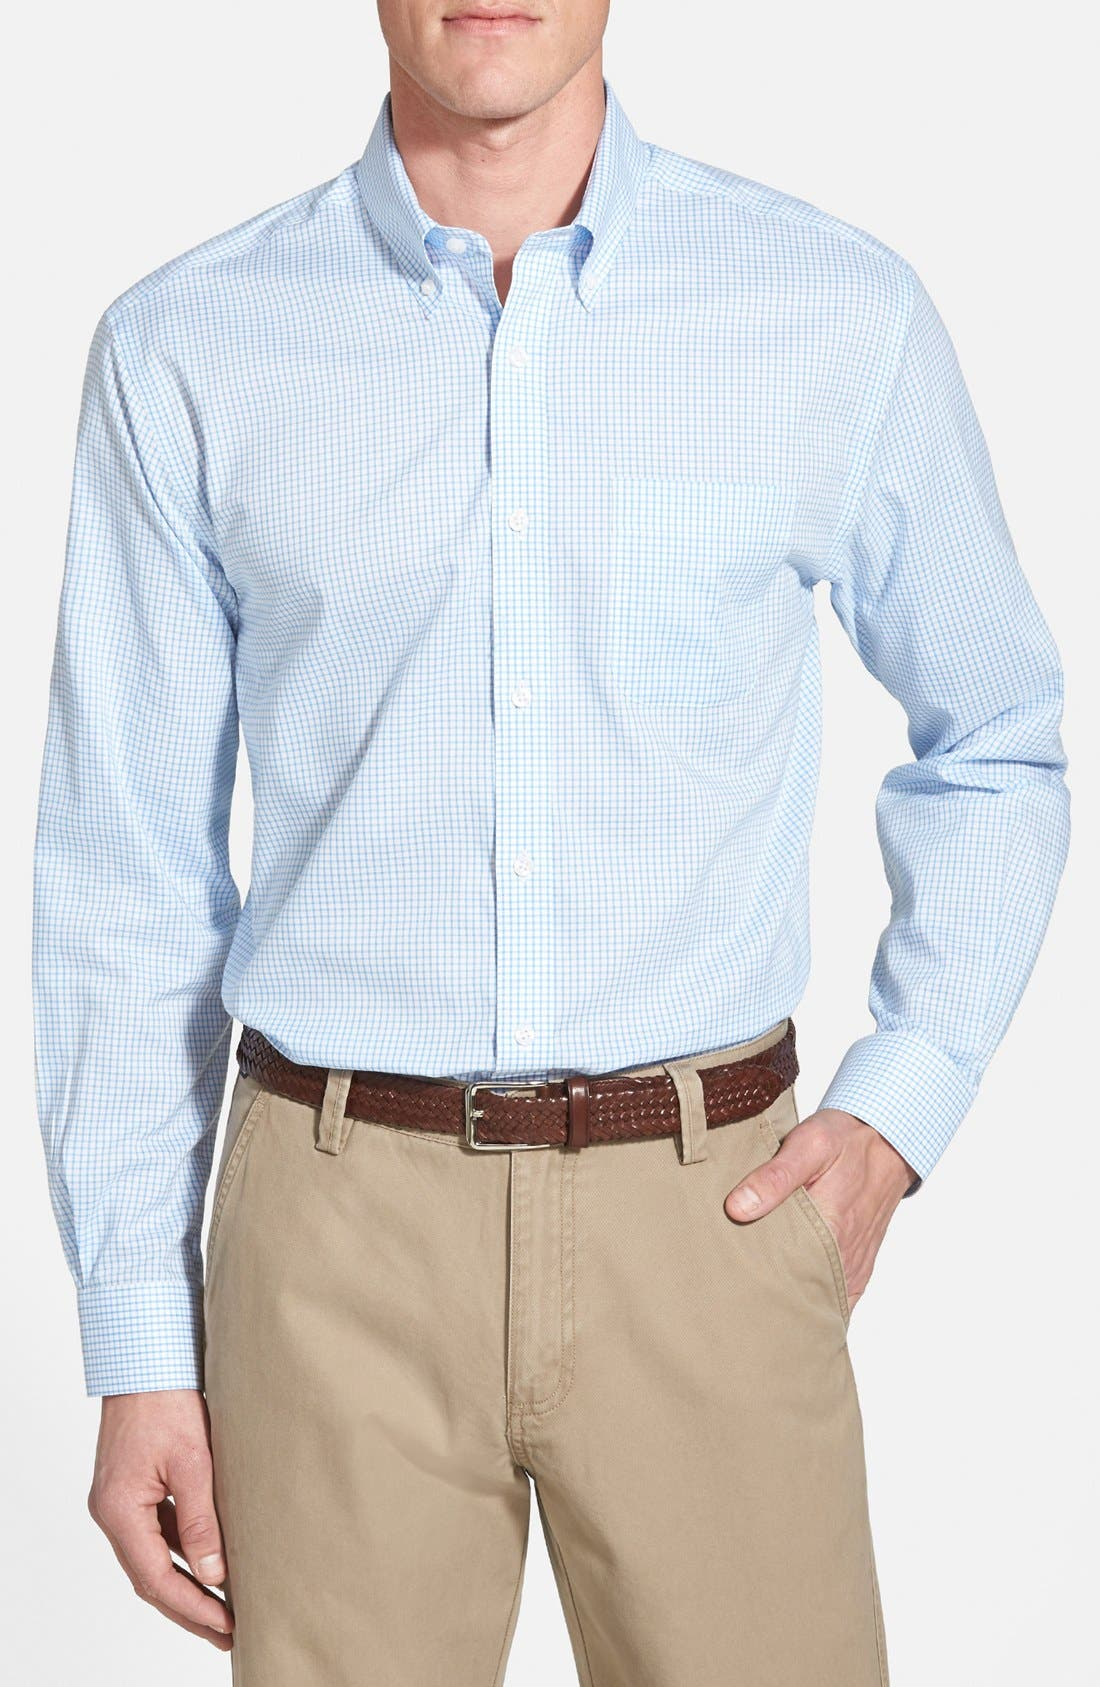 Cutter & Buck 'Epic Easy Care' Classic Fit Wrinkle Free Tattersall Plaid Sport Shirt (Big & Tall)